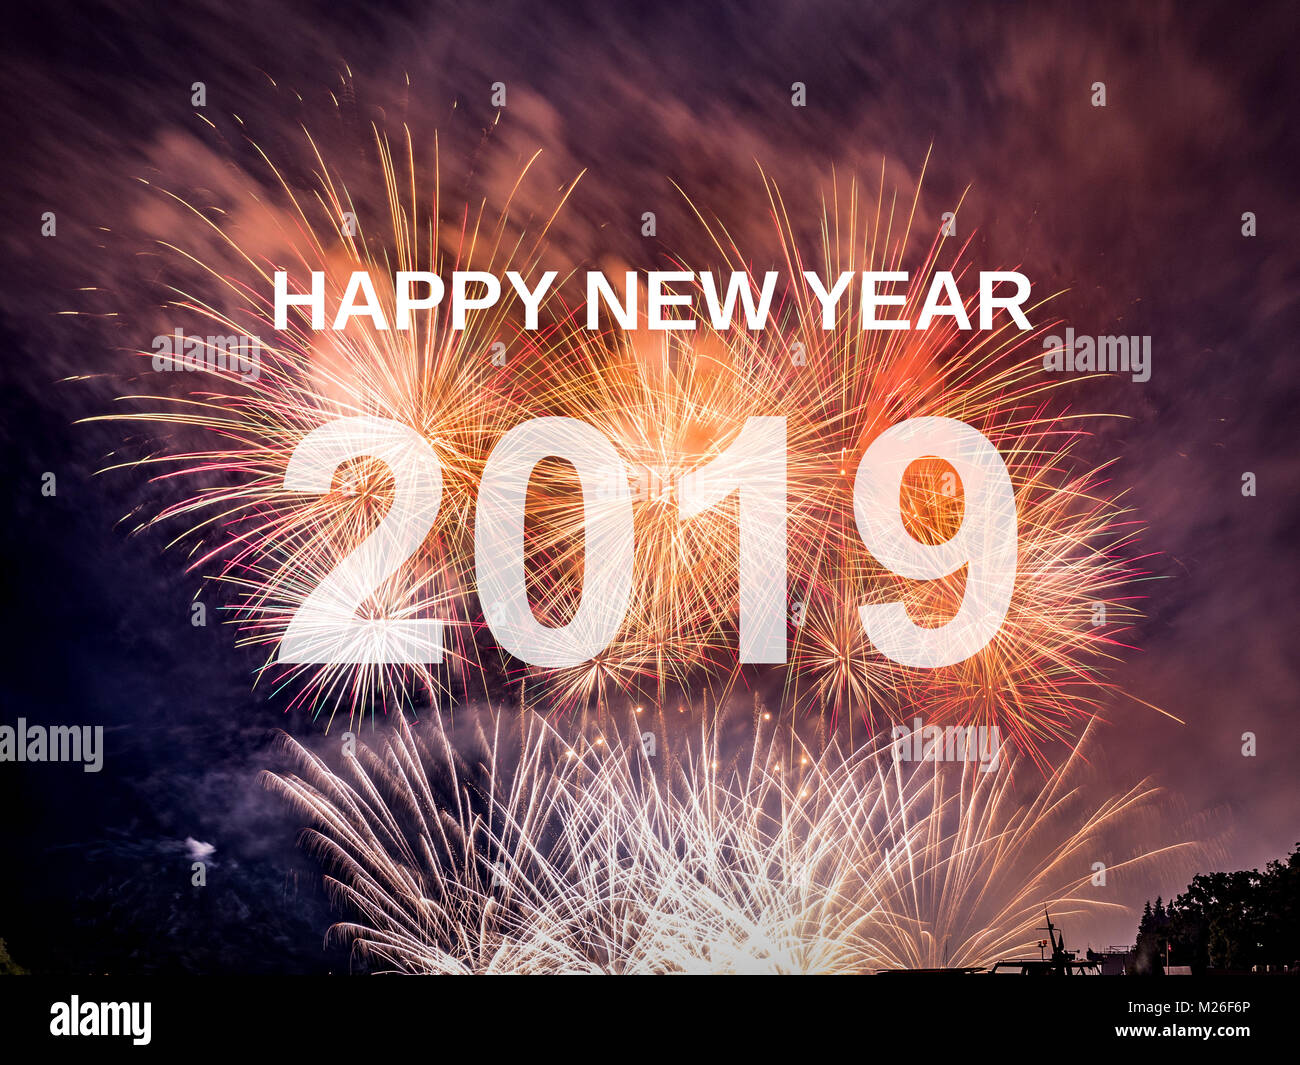 happy new year 2019 with fireworks background celebration new year 2019